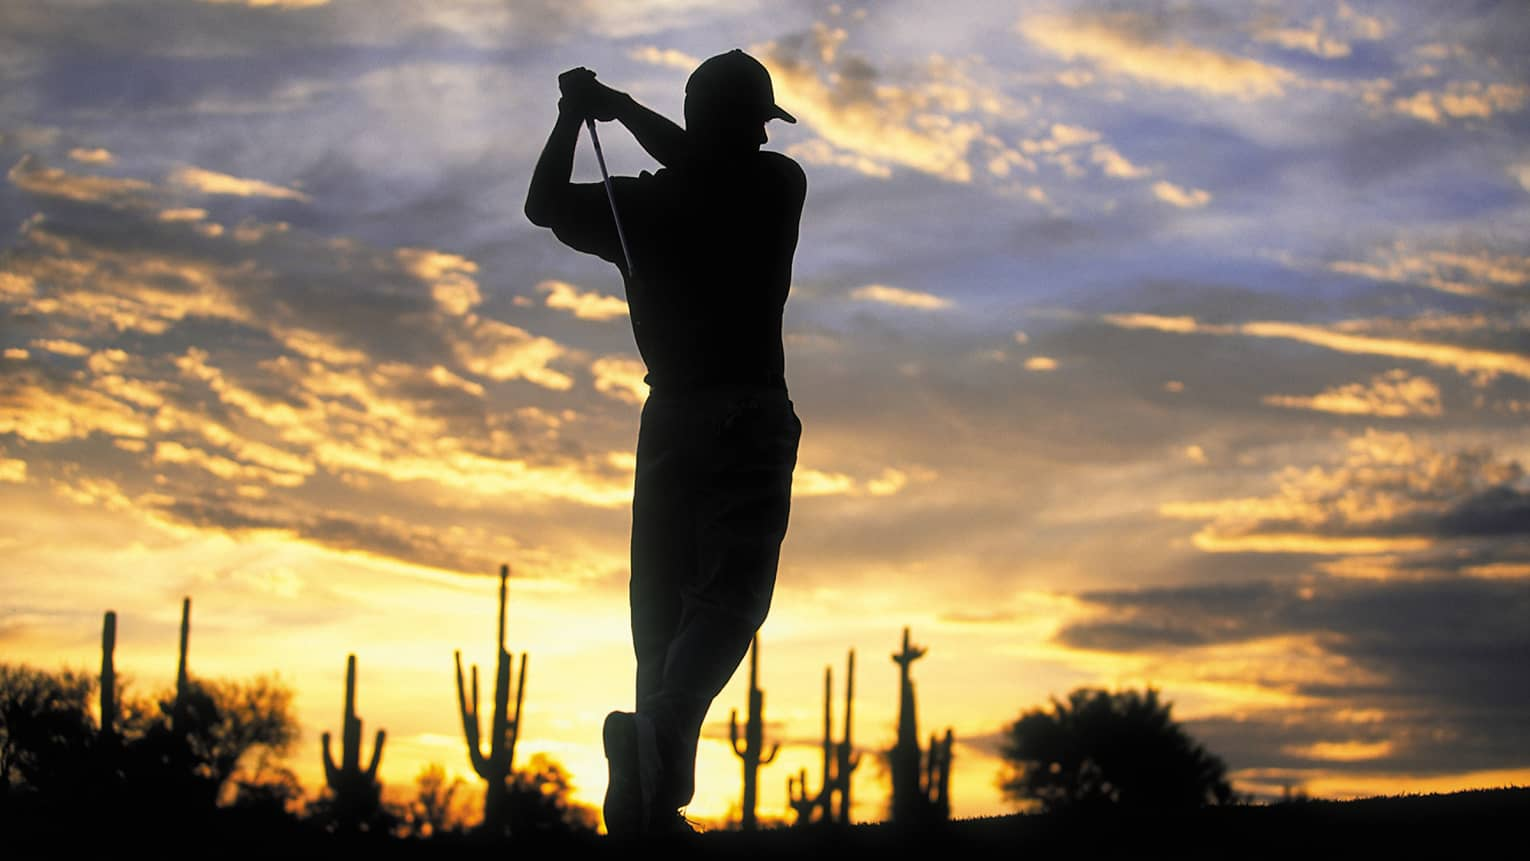 Silhouette of golfer swinging club against sunset sky at Troon North golf course